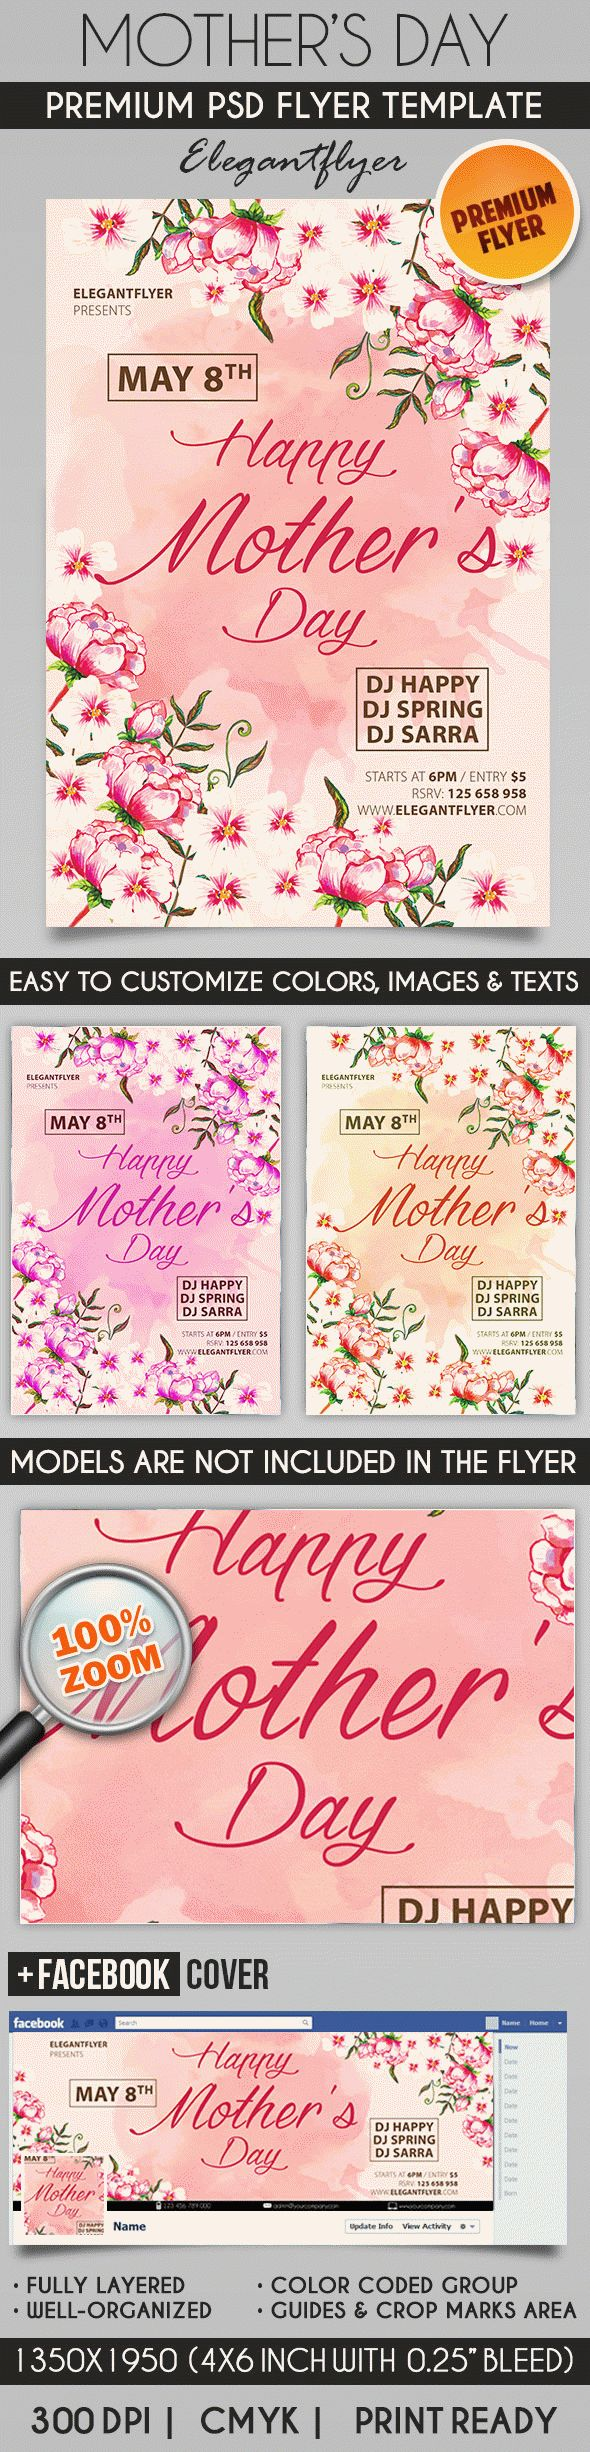 Flowers for Mothers Day PSD Poster